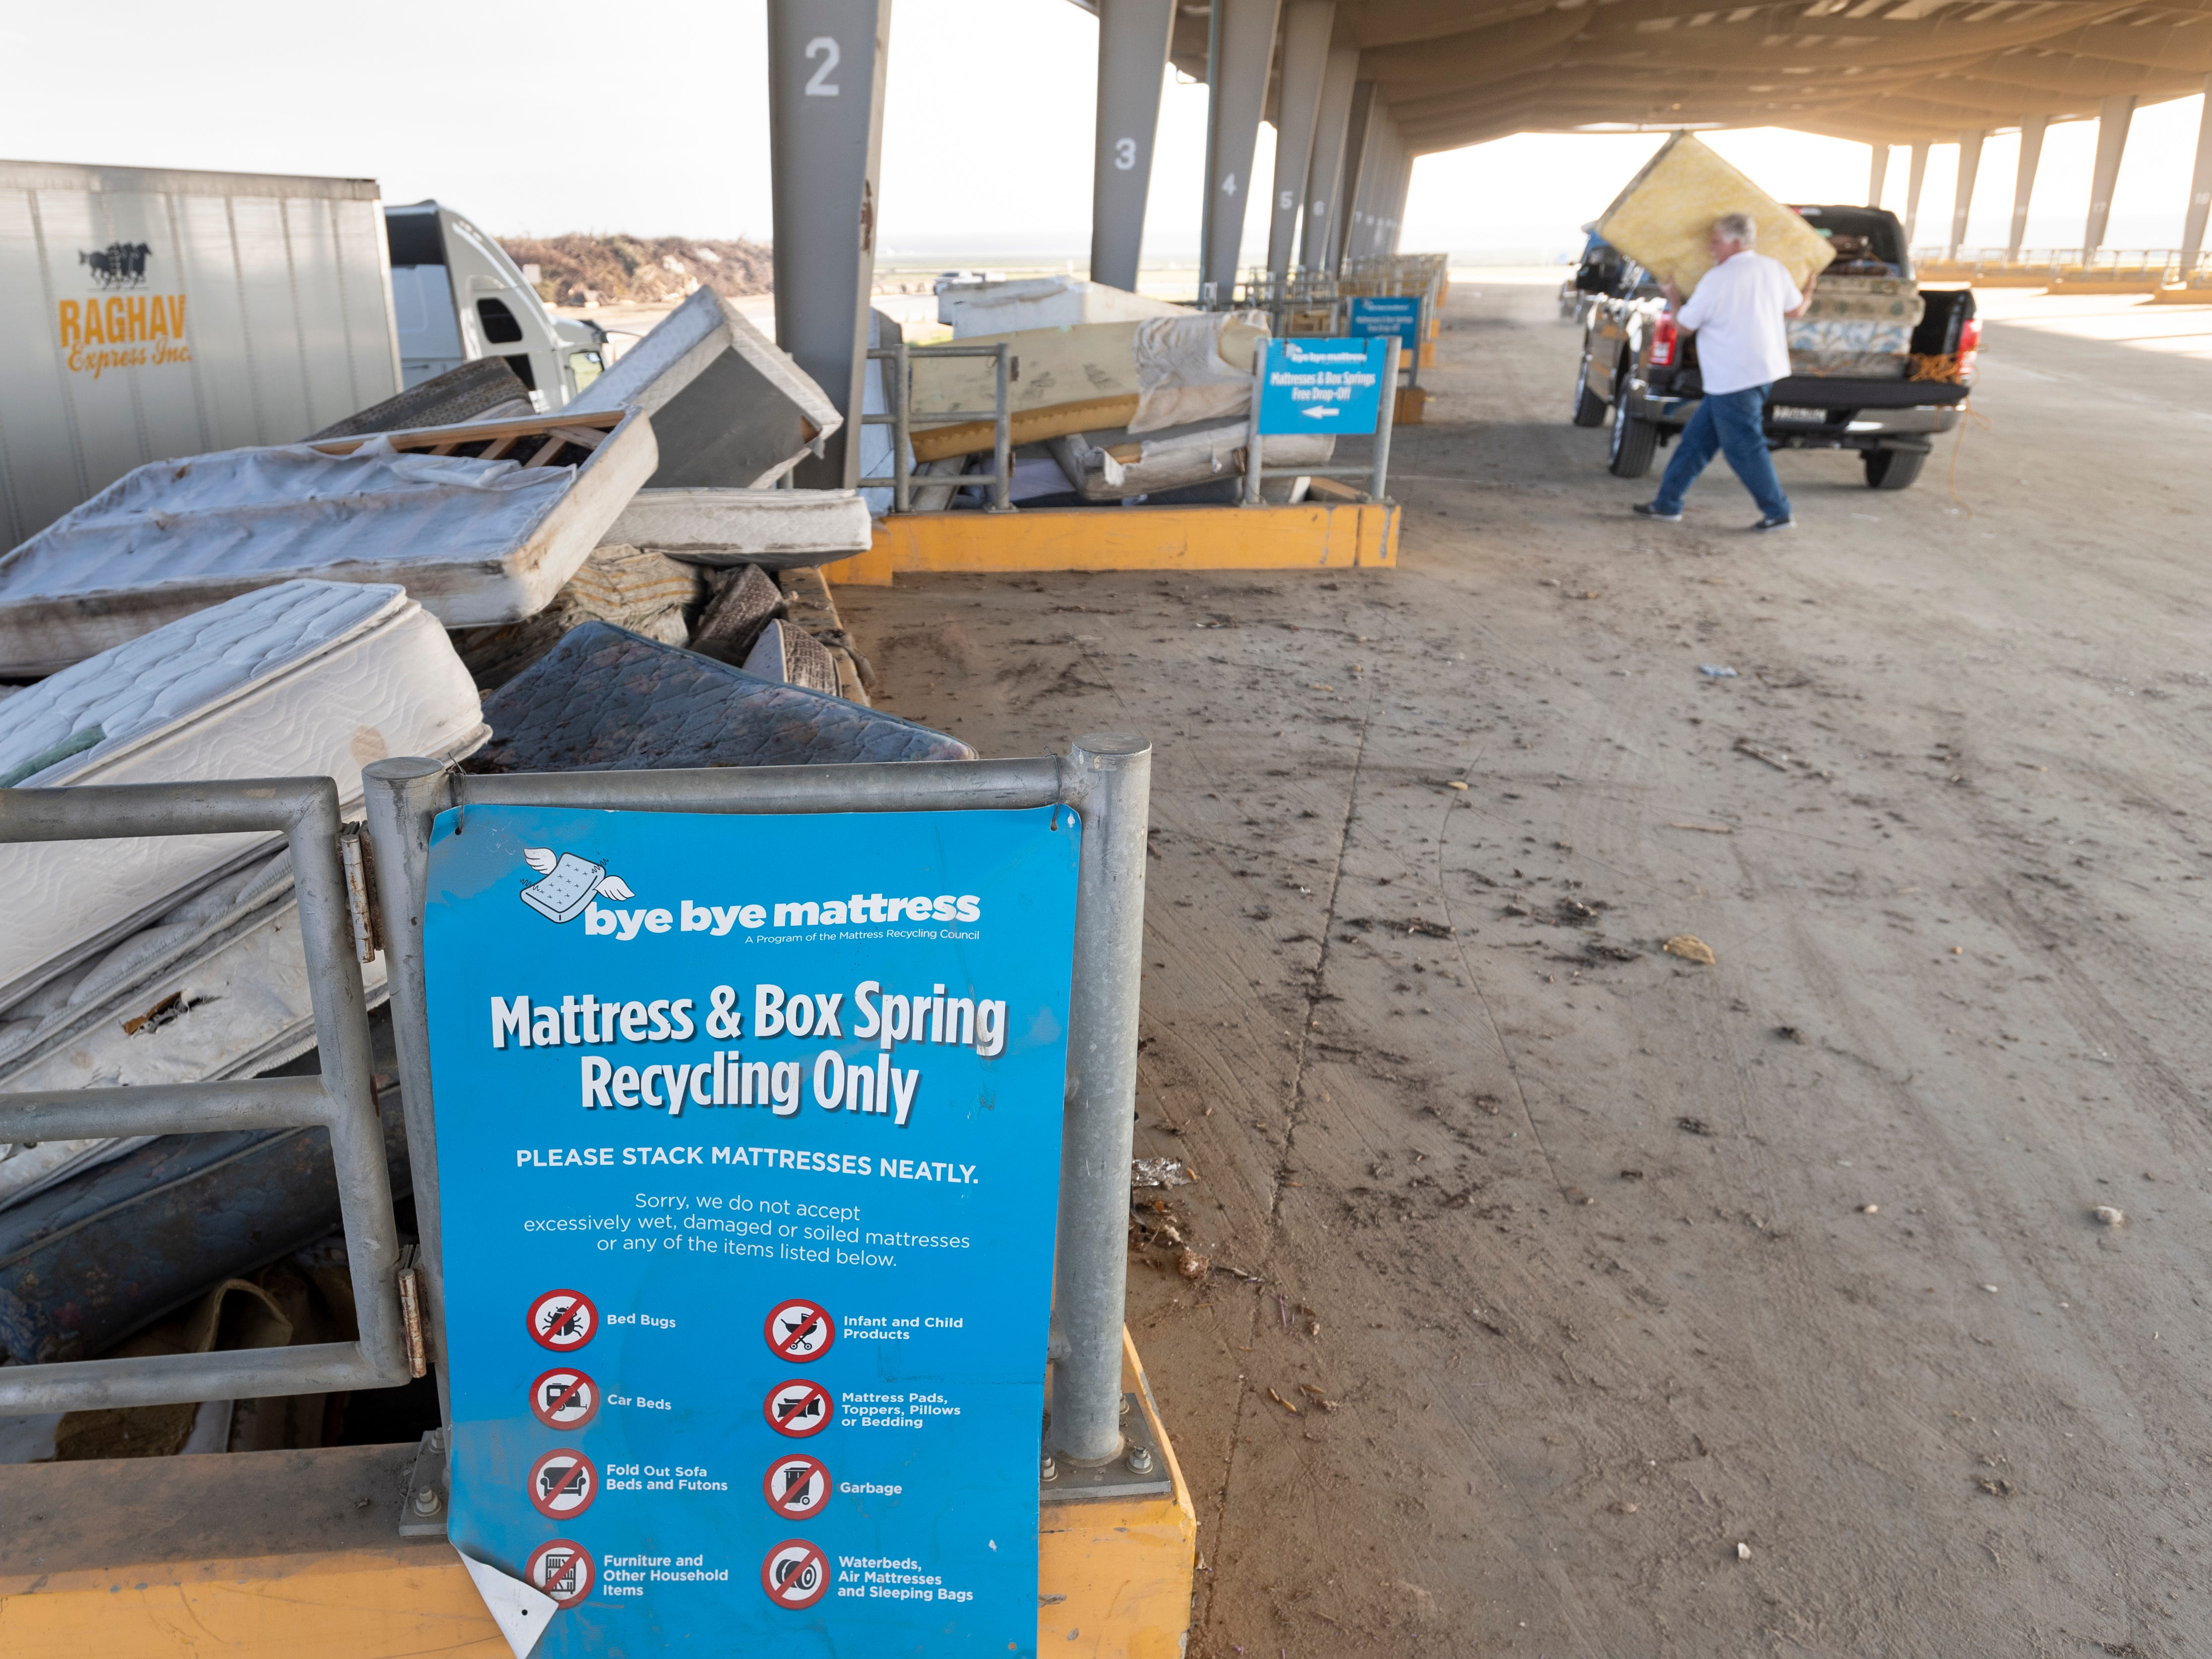 Local residents contribute to a mattress recycling program